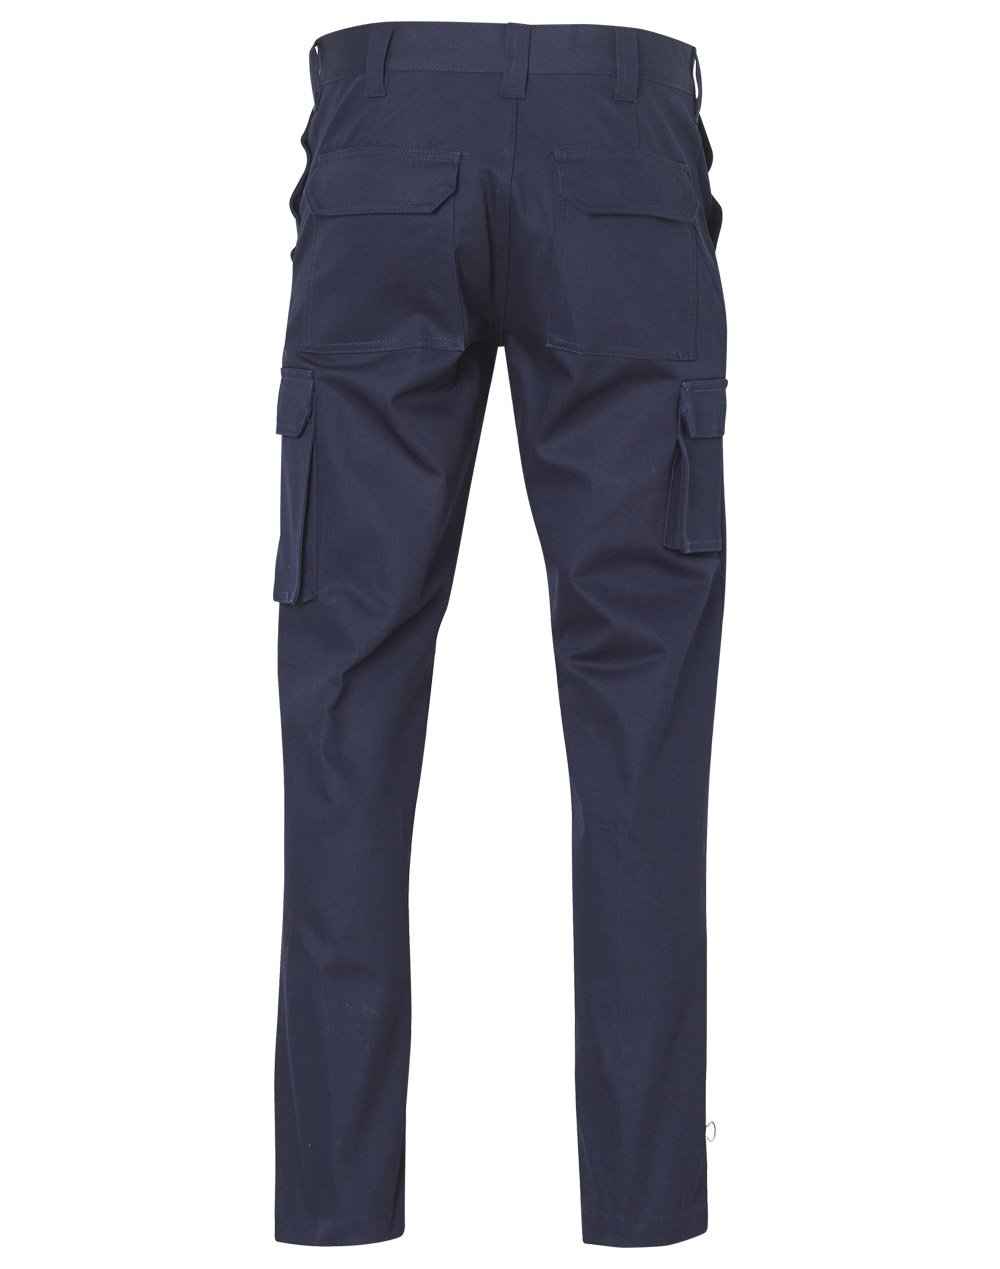 https://s3-ap-southeast-1.amazonaws.com/ws-imgs/WORKWEAR/WP07_Navy_Back.jpg